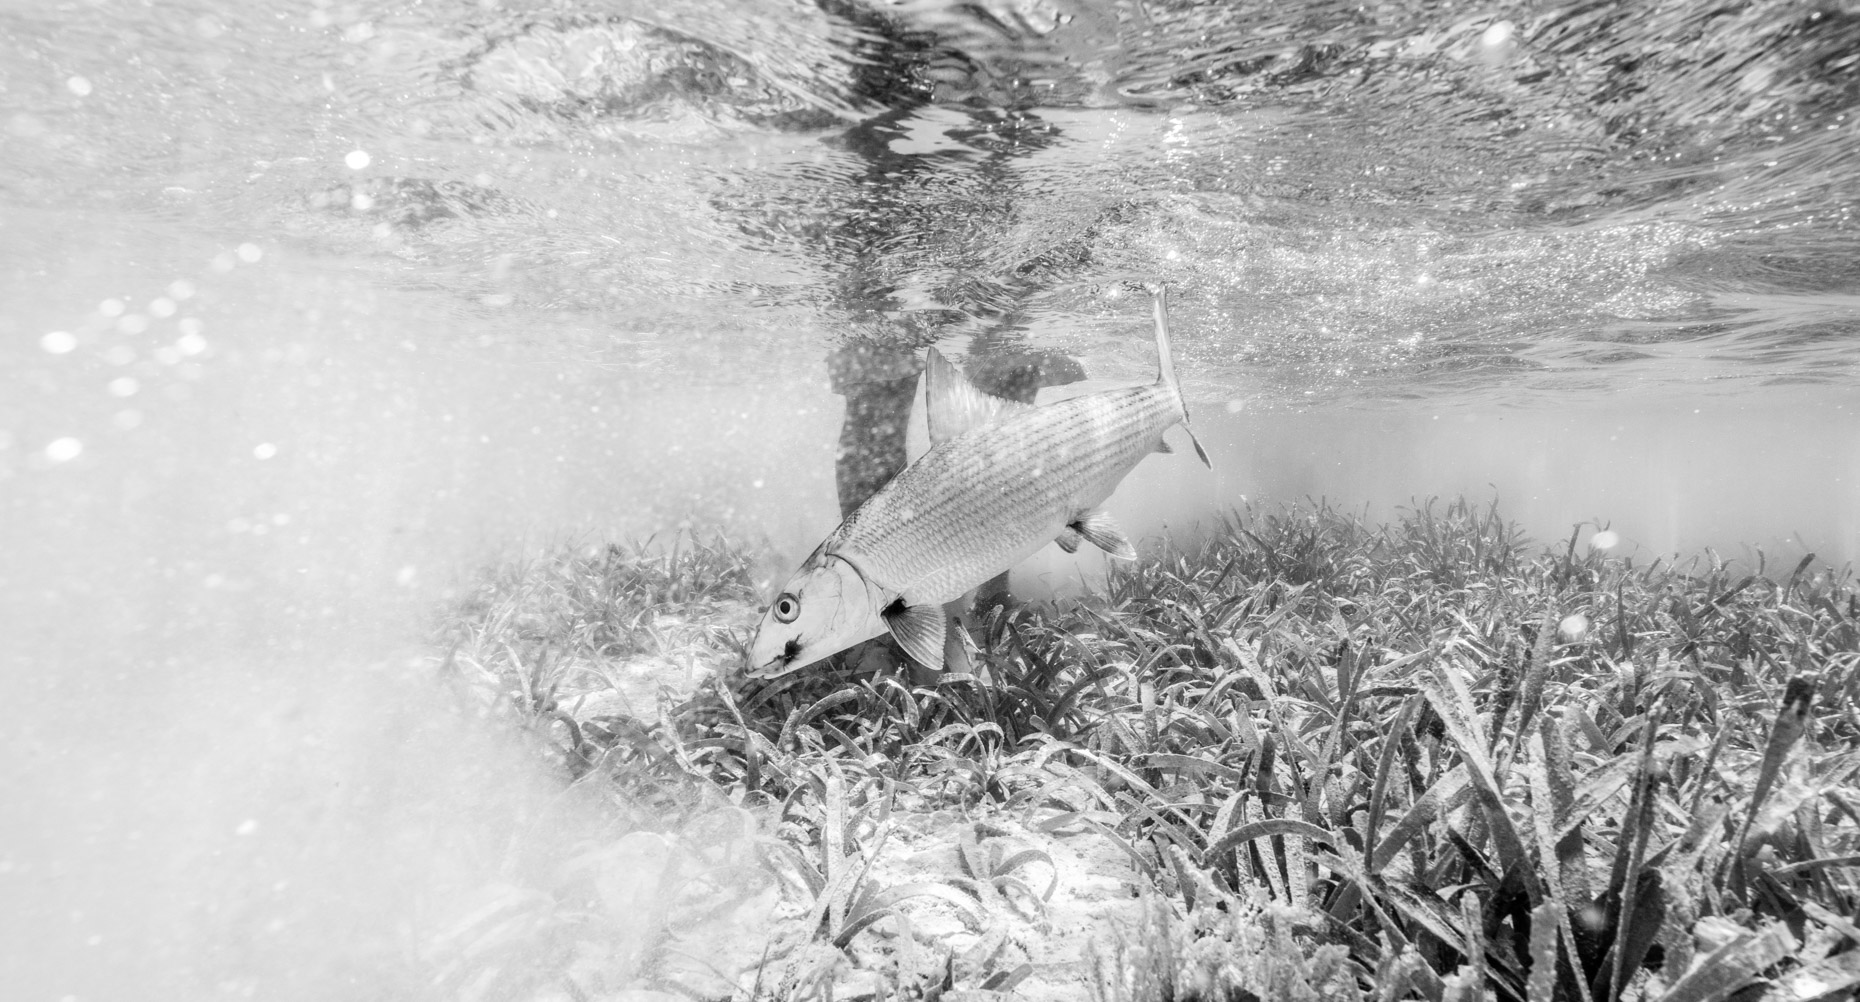 Will_Graham_Tailwaters_FlyFishGuanaja_3_18-255